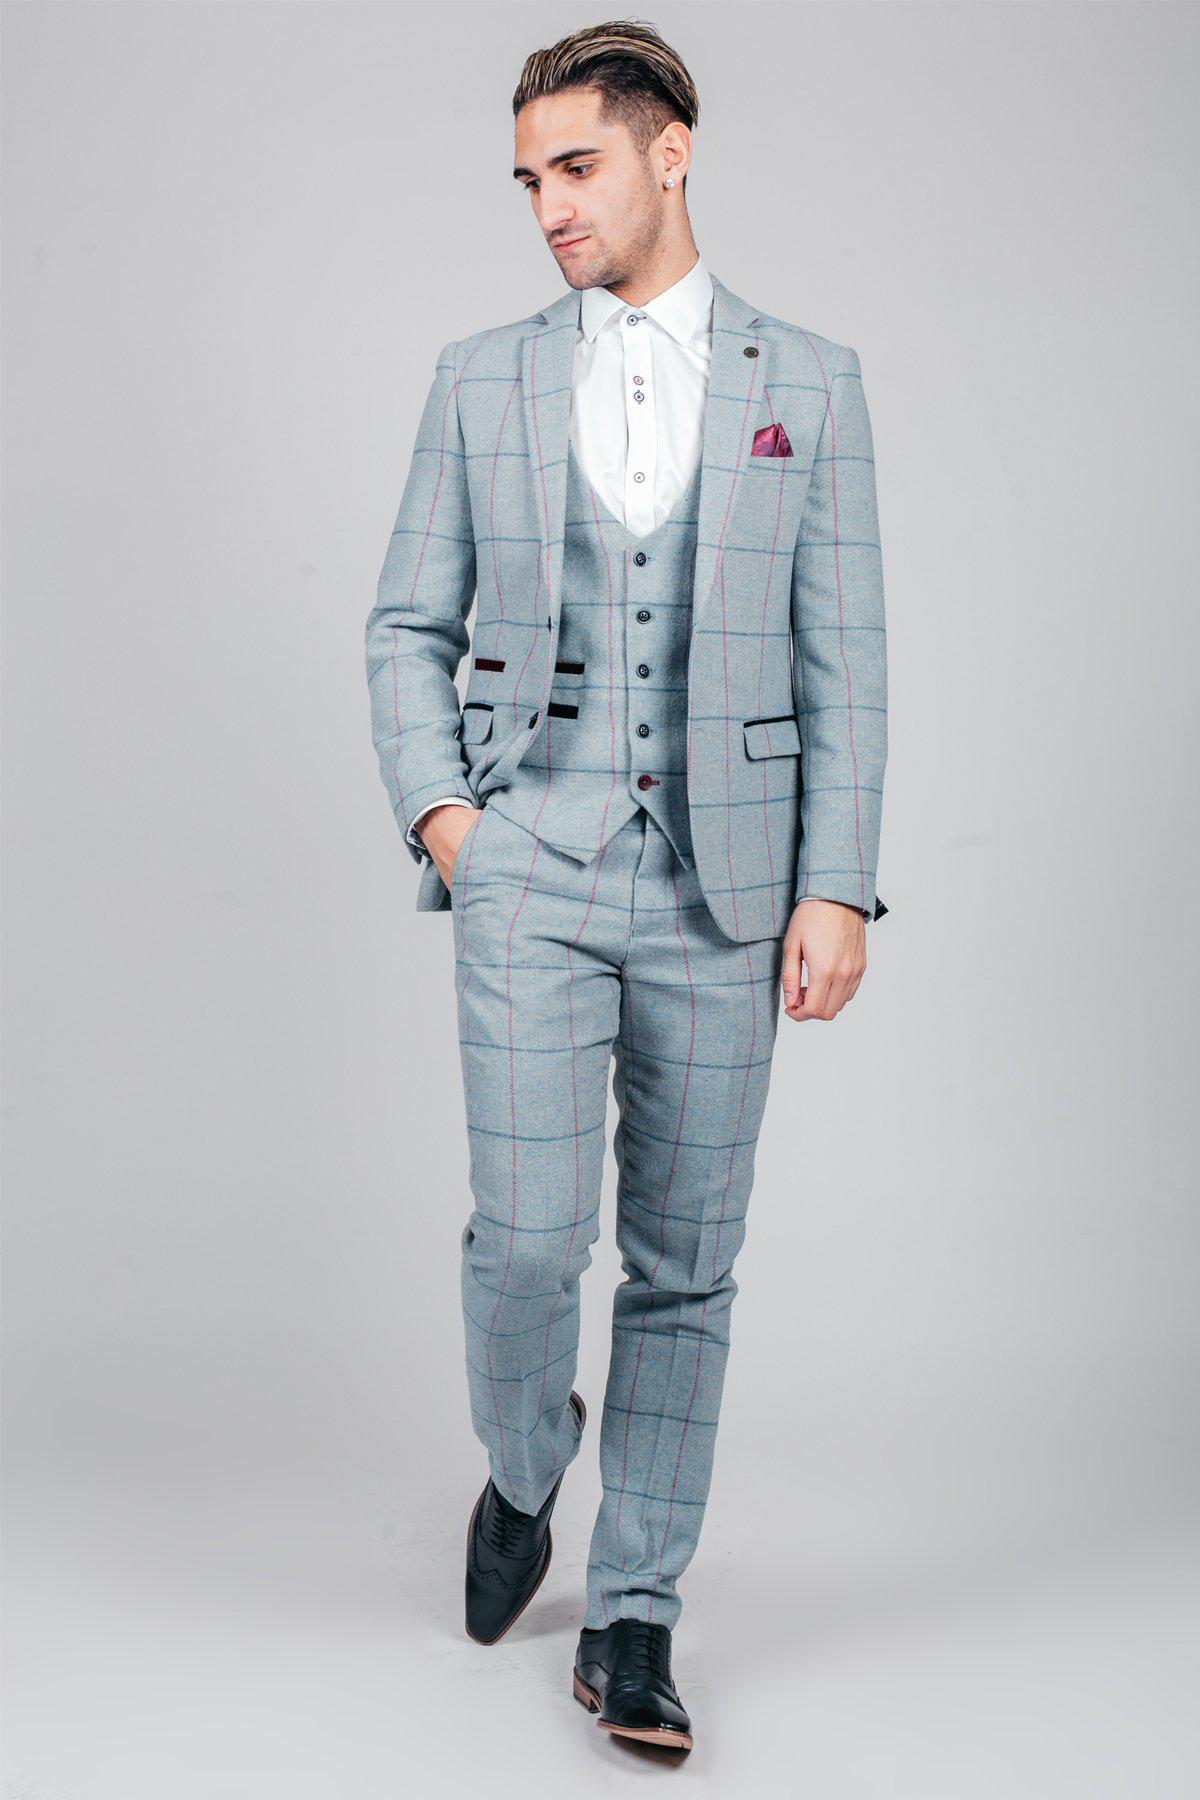 NICOLAS - Sky Check Tweed Three Piece Suit-SUITS-Marc Darcy